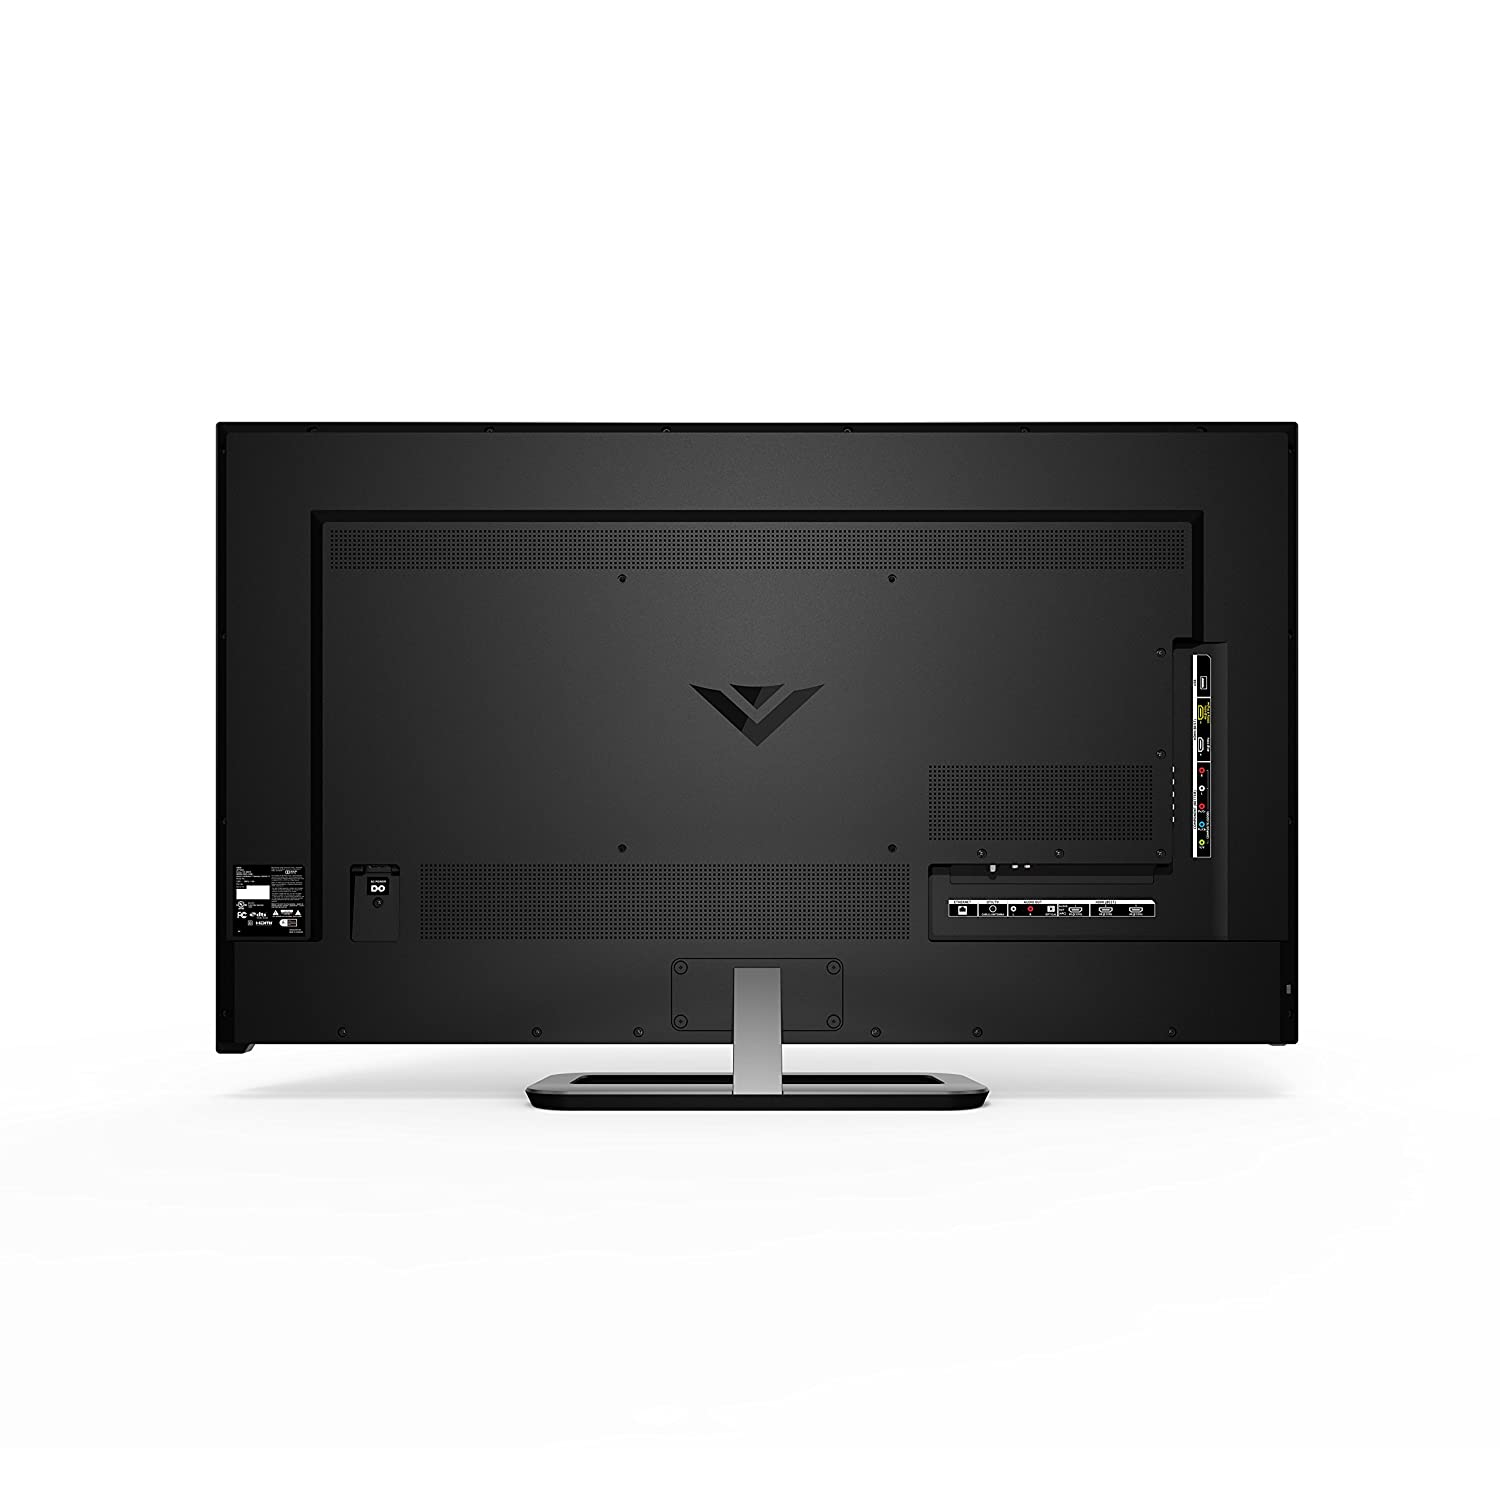 811xXIbS2mL._SL1500_ amazon com vizio p502ui b1 50 inch 4k ultra hd smart led hdtv vizio tv wiring diagram at n-0.co